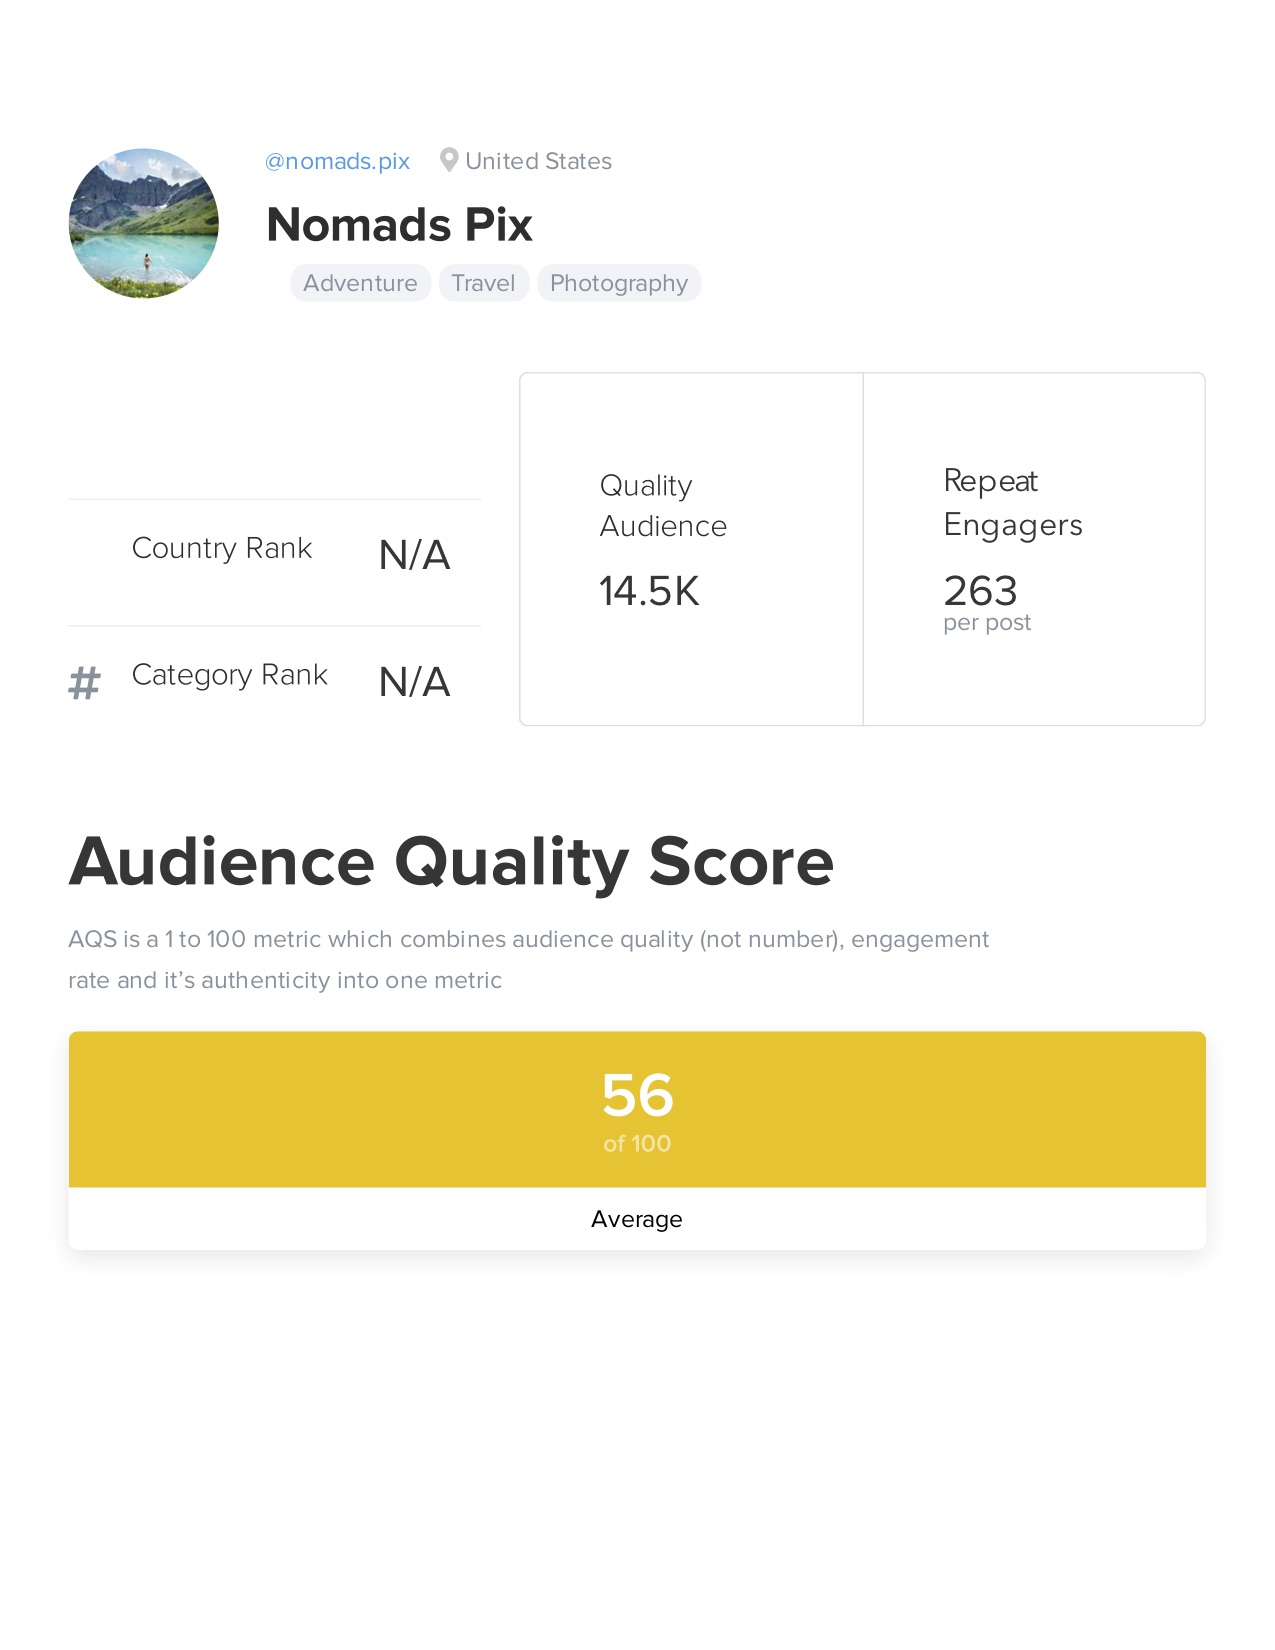 Buy a 30k Instagram account with analytics